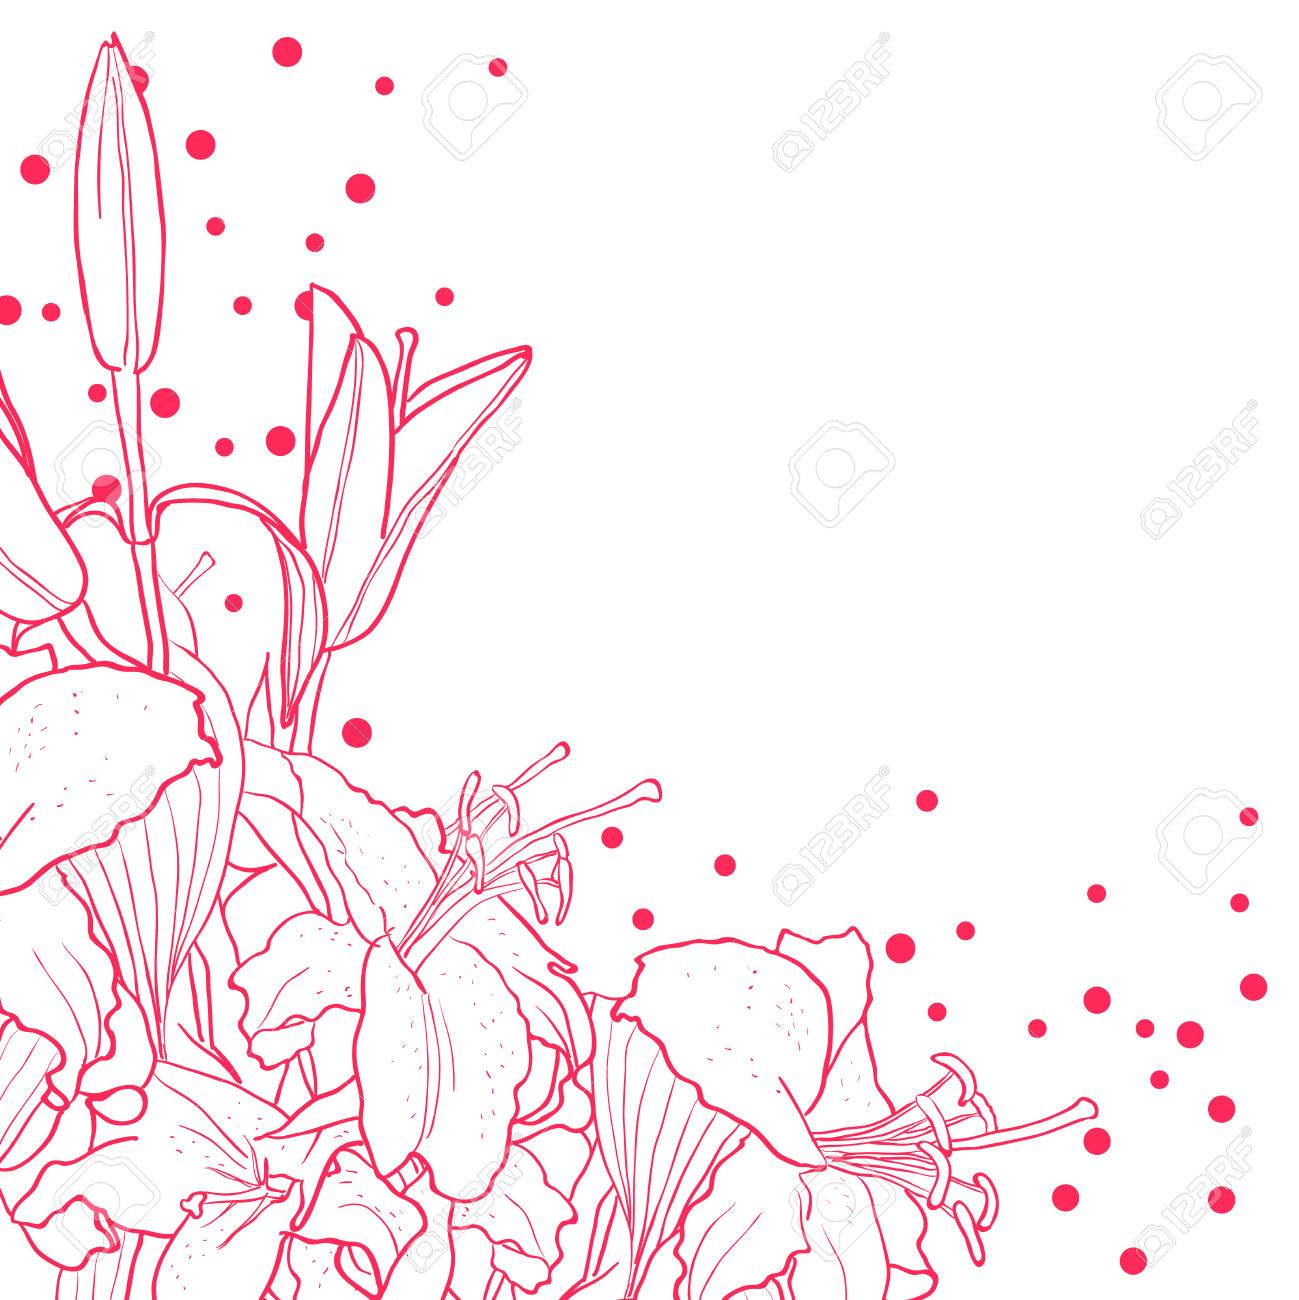 Romantic floral background for wedding funeral birthday romantic floral background for wedding funeral birthday invitation vector hand drawn lily stopboris Image collections